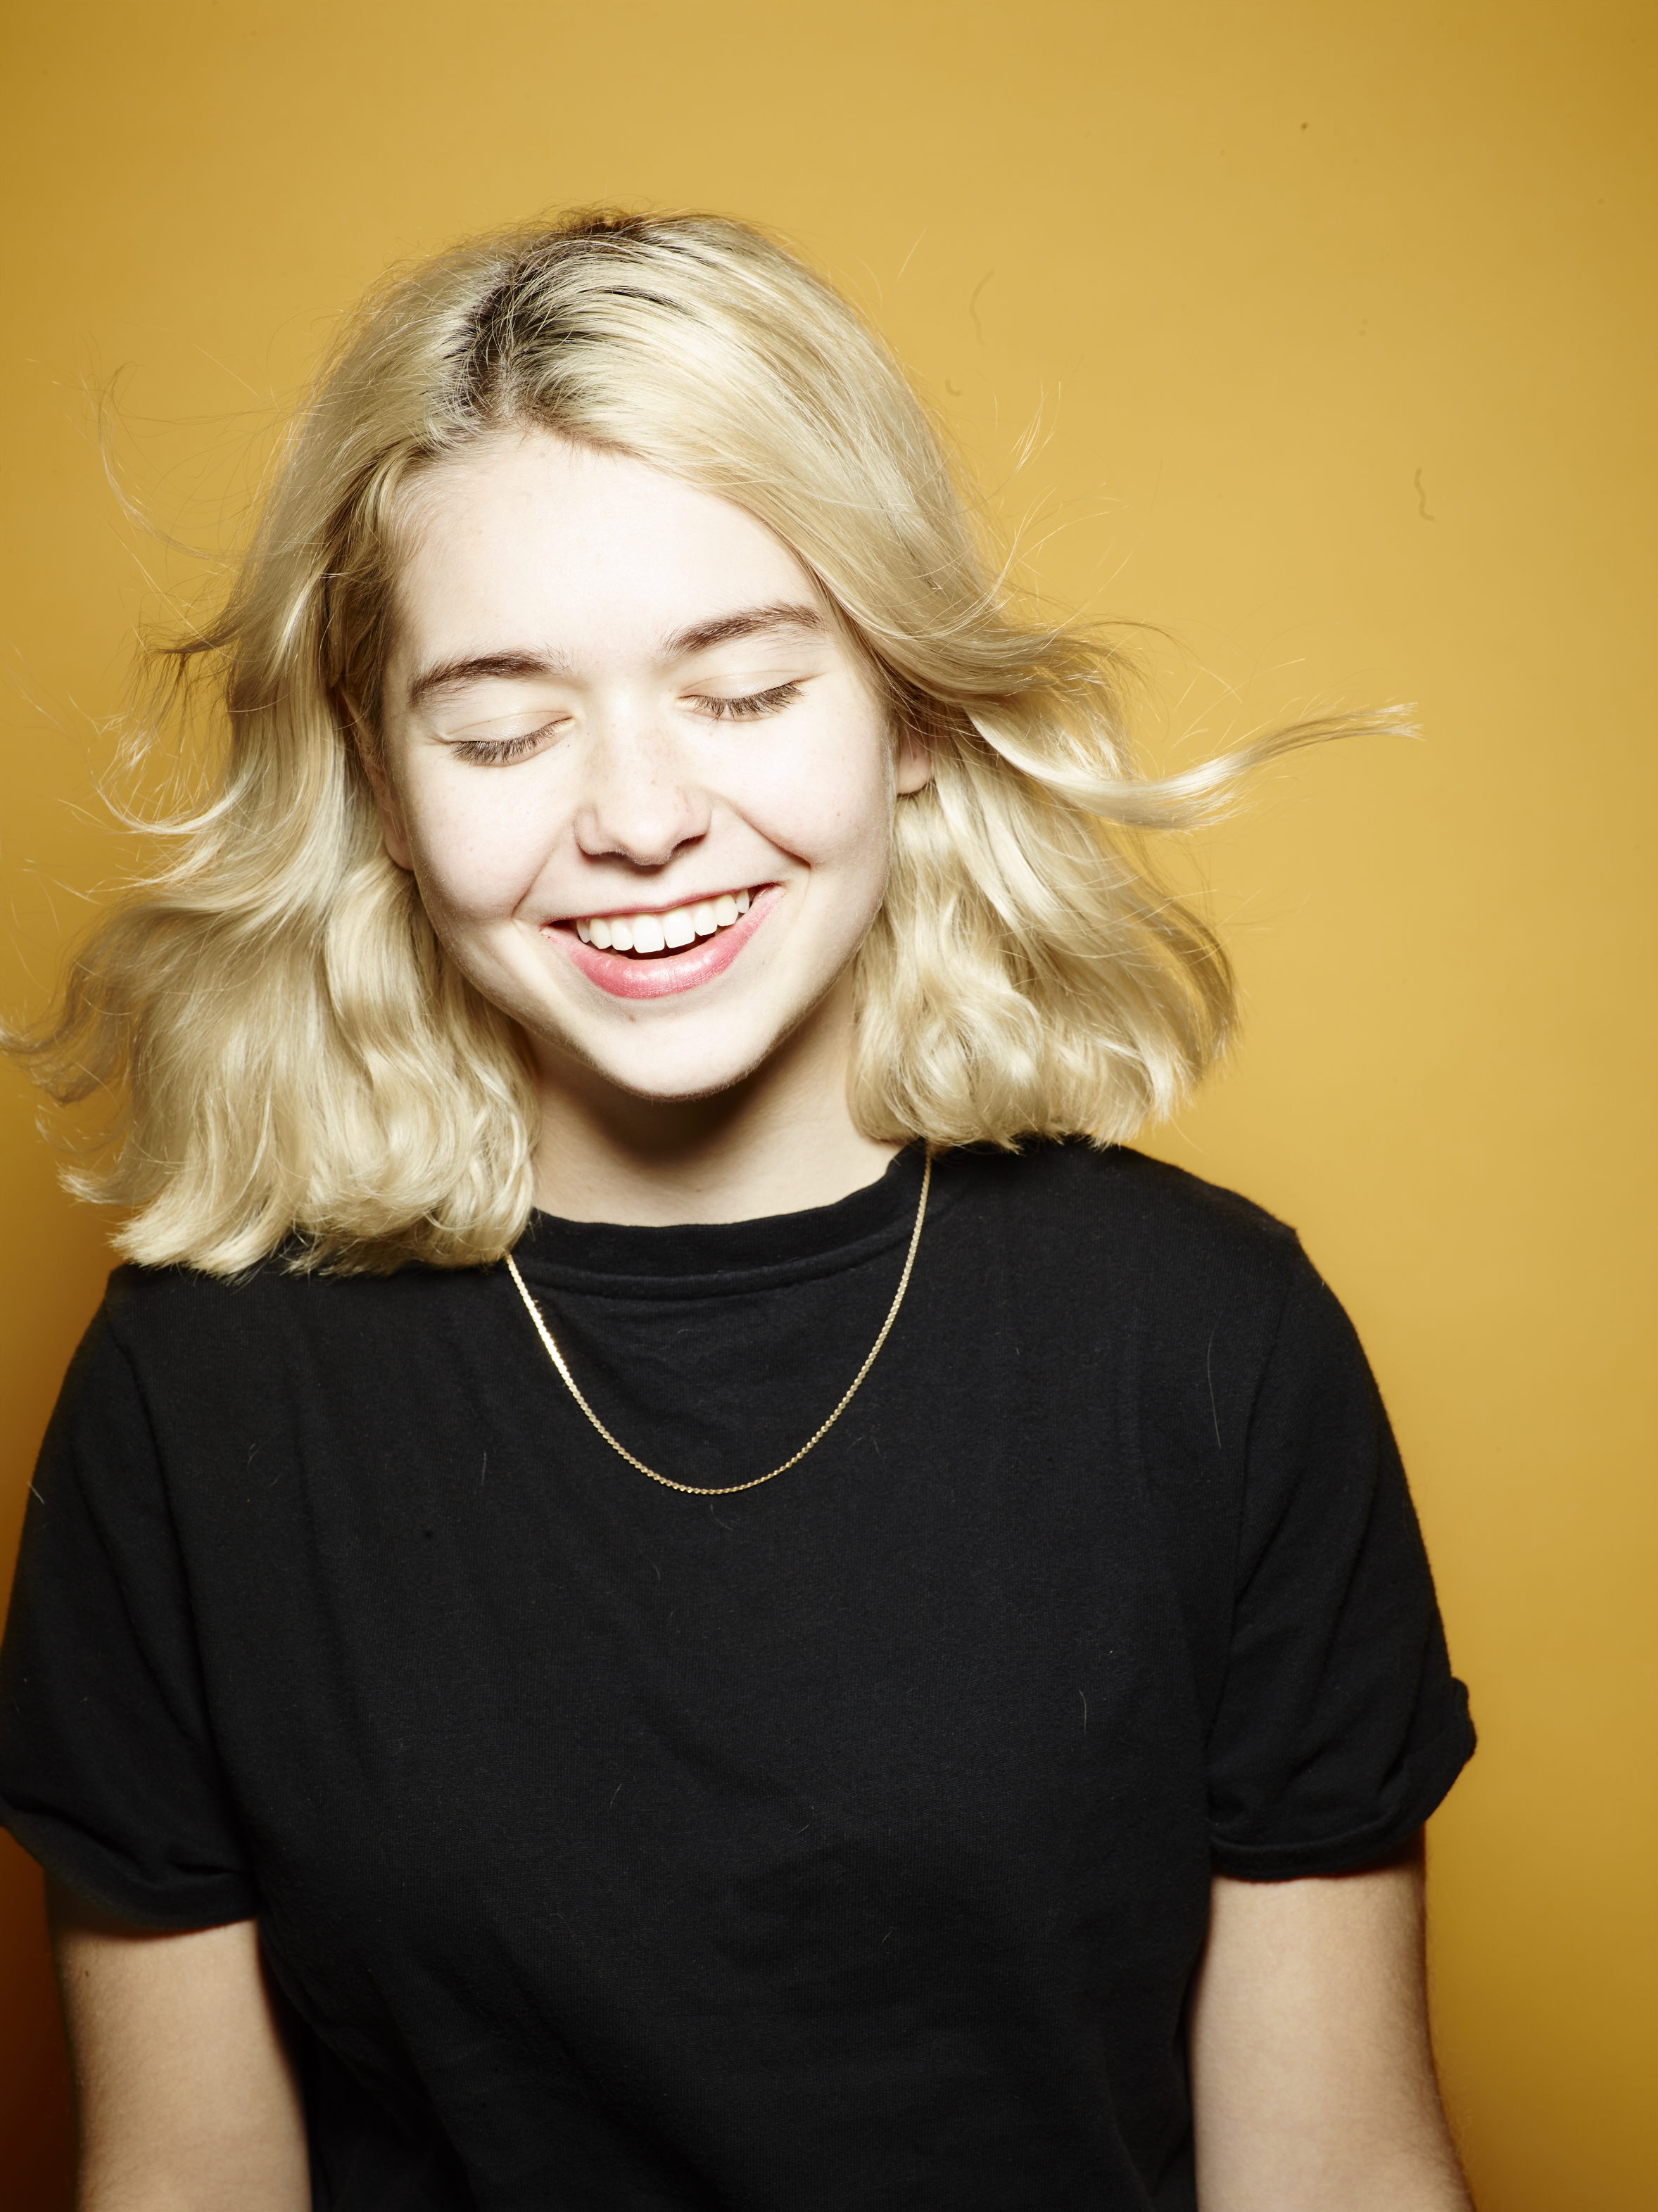 Lindsey Jordan, 18 ans, alias Snail Mail. Photo Michael LAVINE